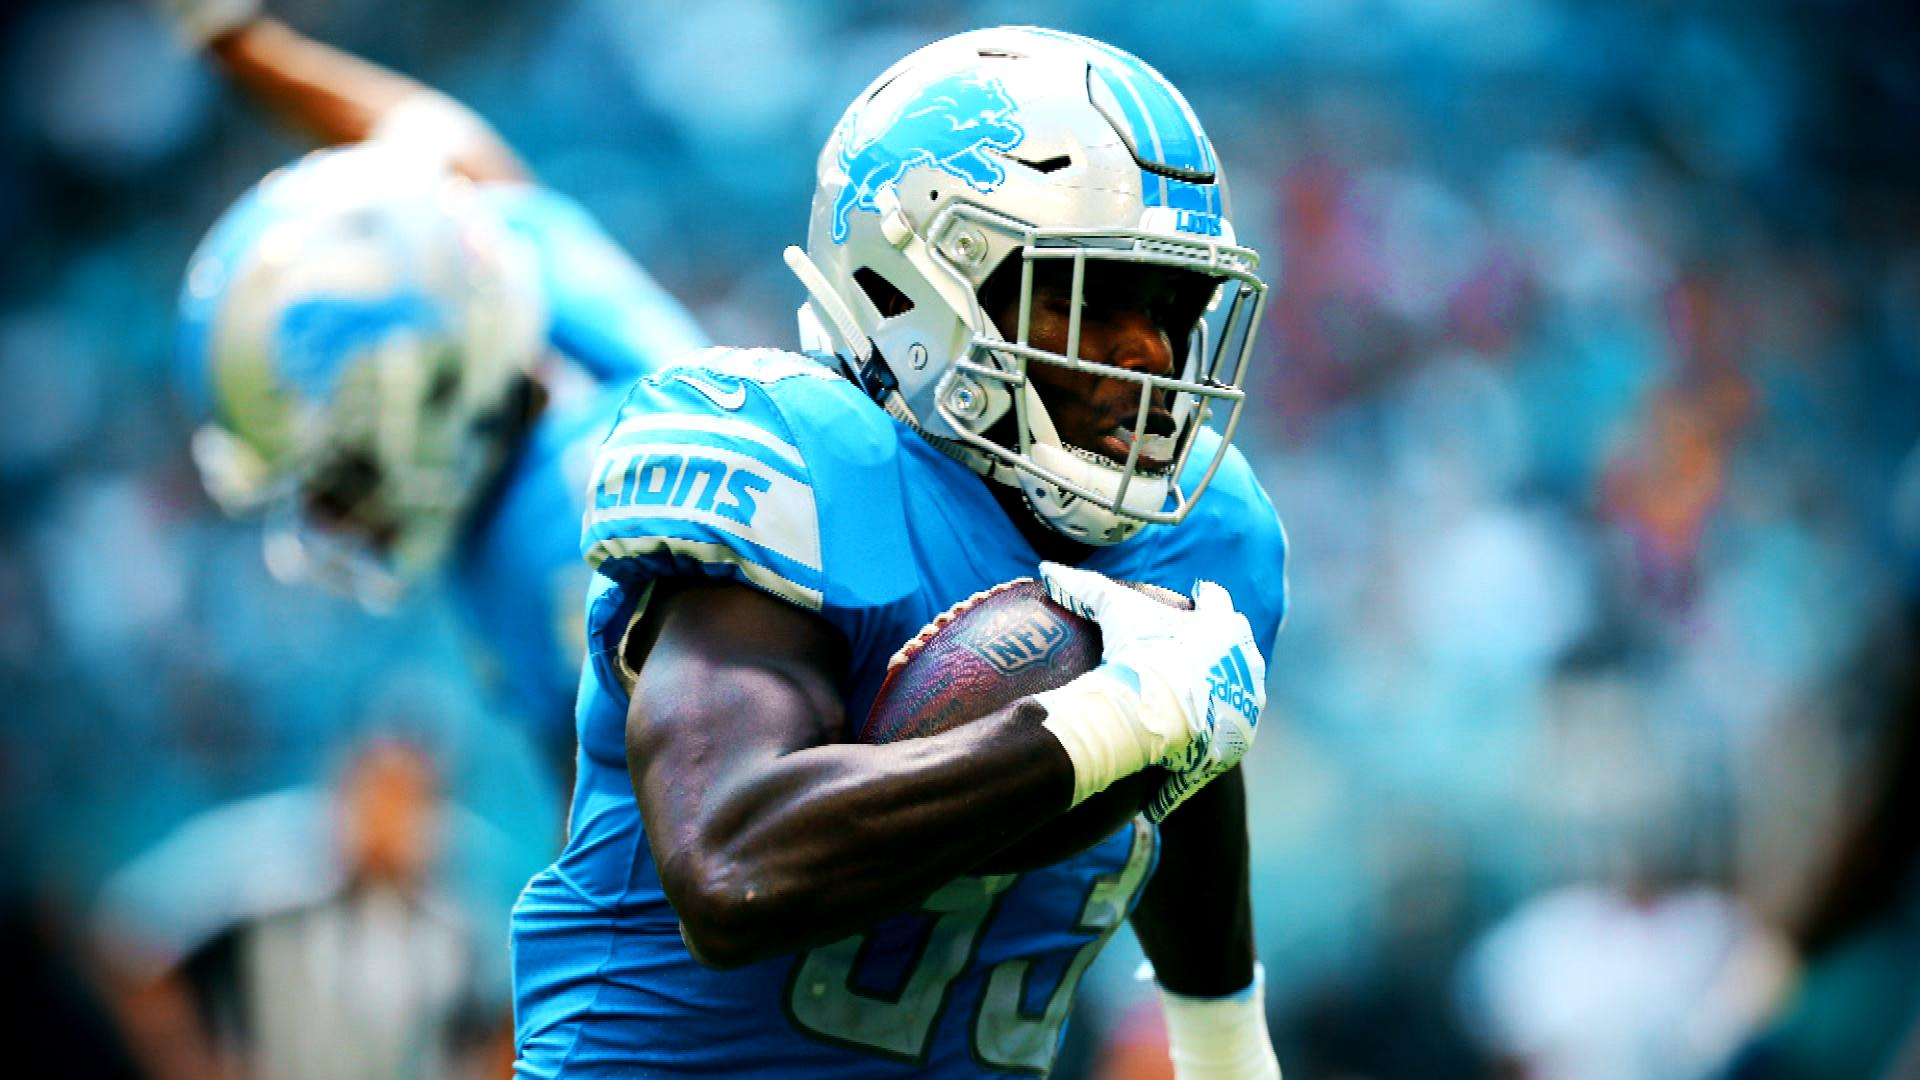 2019 Fantasy Football Breakout Players: Kerryon Johnson, Lions